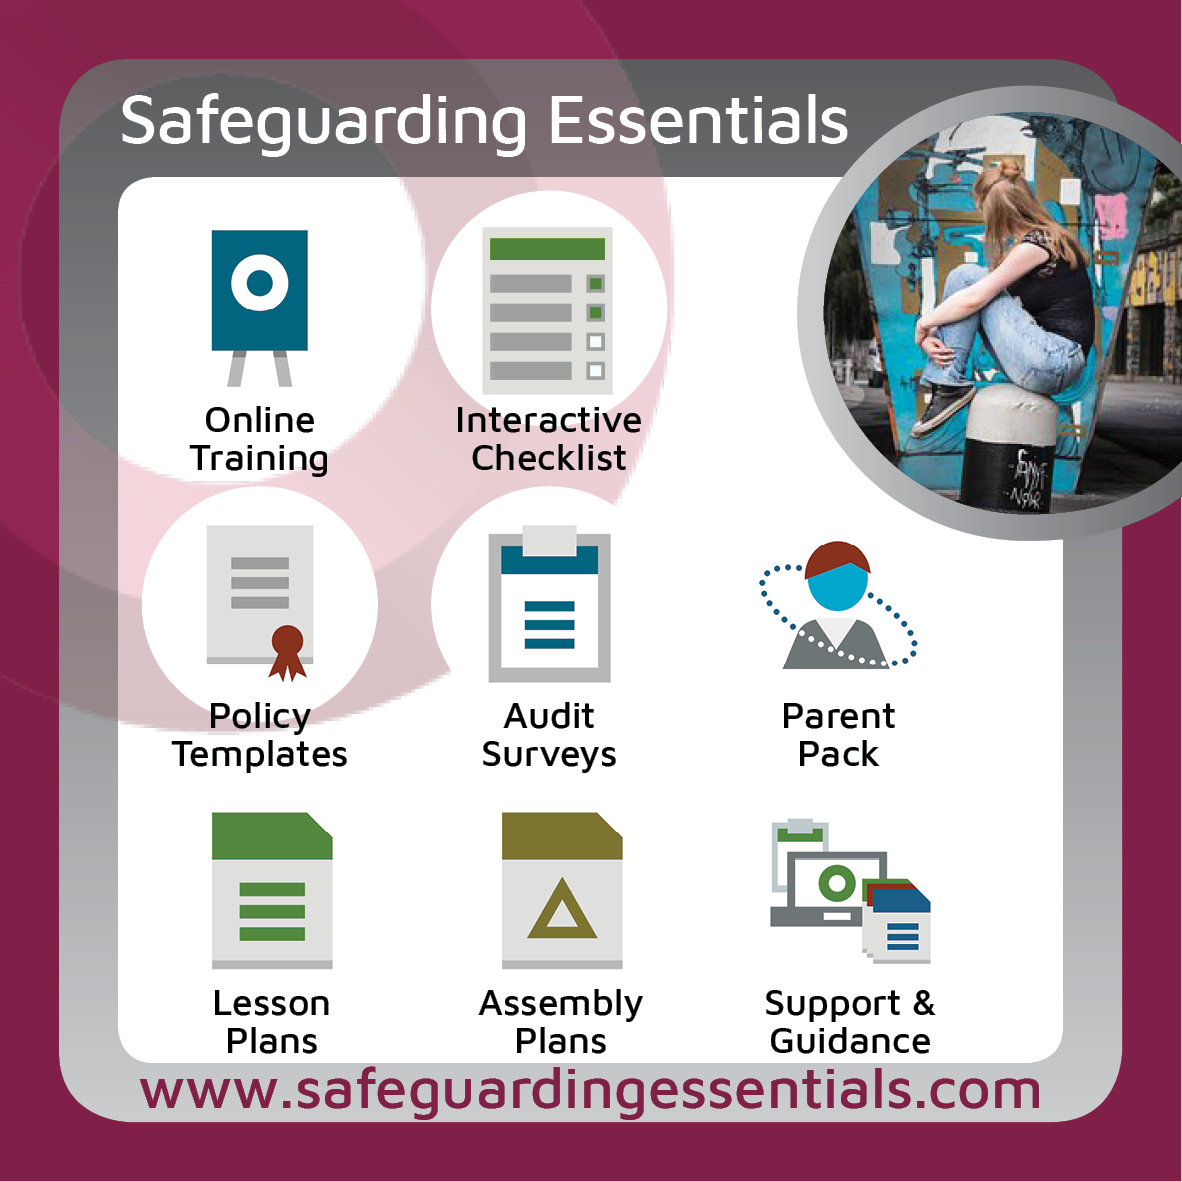 Safeguarding Essentials – Over 30% of school staff not